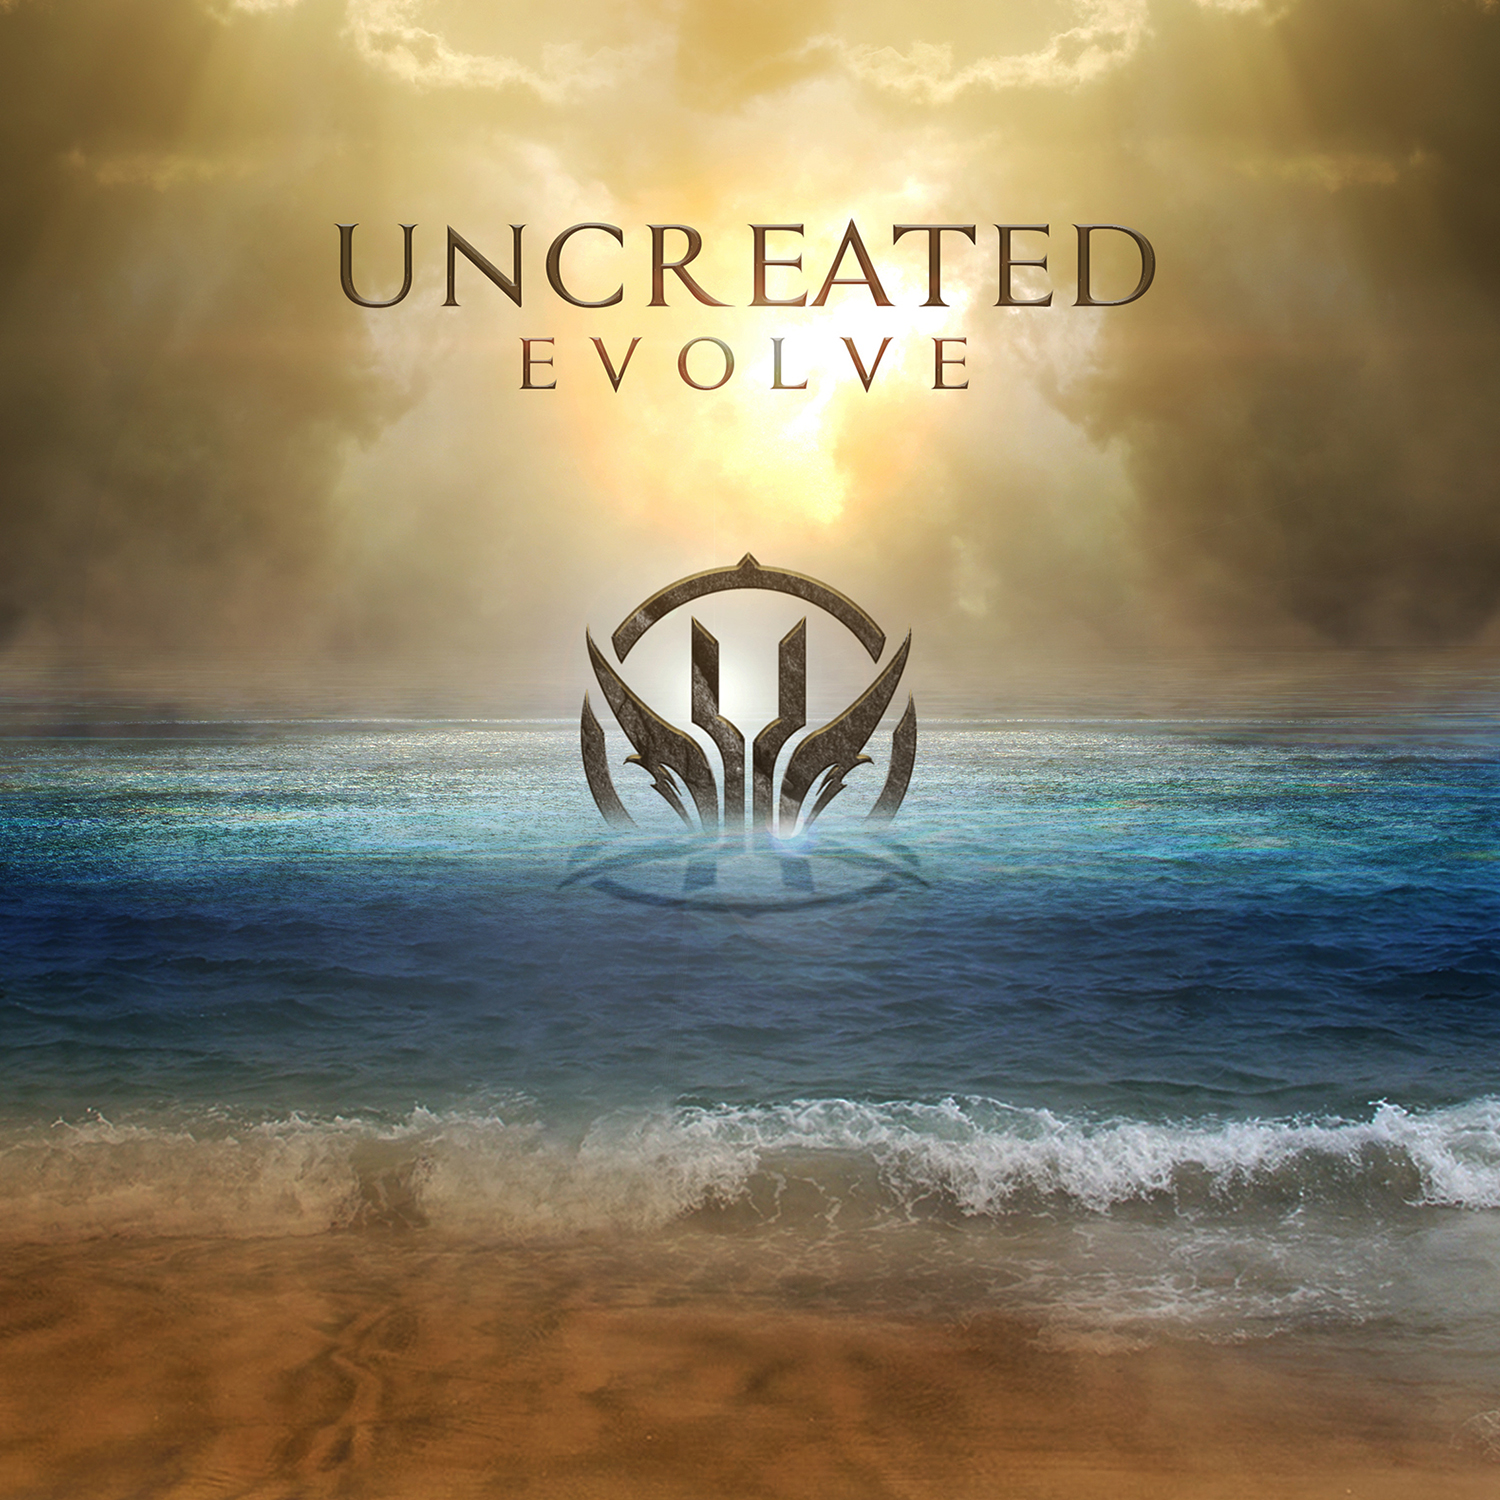 01. Uncreated Evolve Single